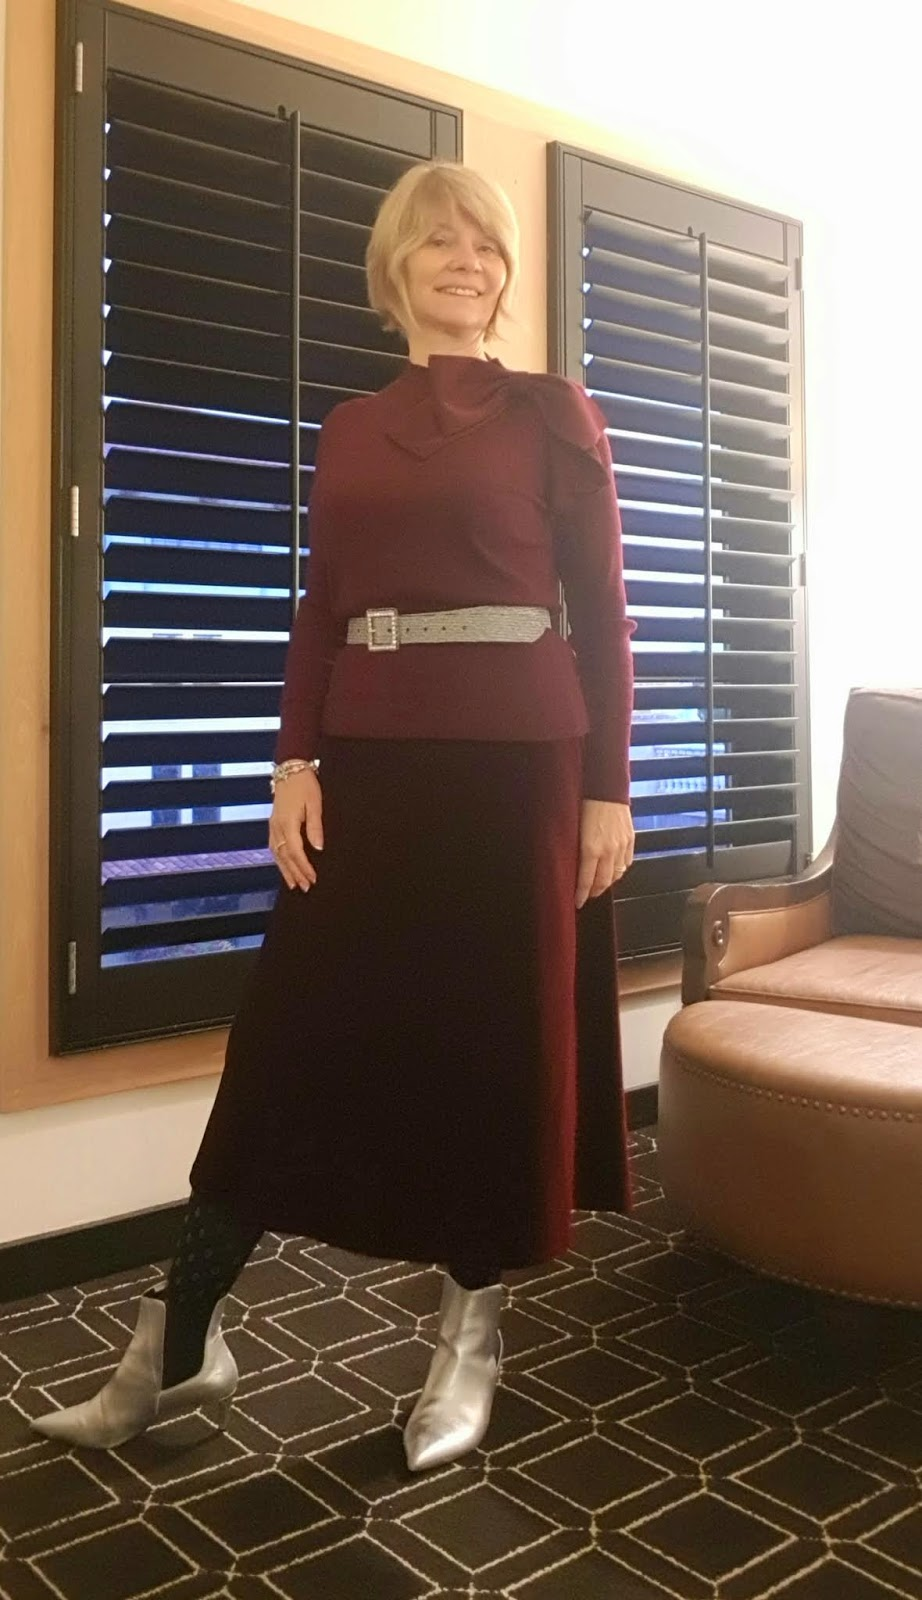 Gail Hanlon, over 50s style blogger, in monochrome burgundy: velvet skirt and top worn with a silver belt and silver ankle boots to add some originality.